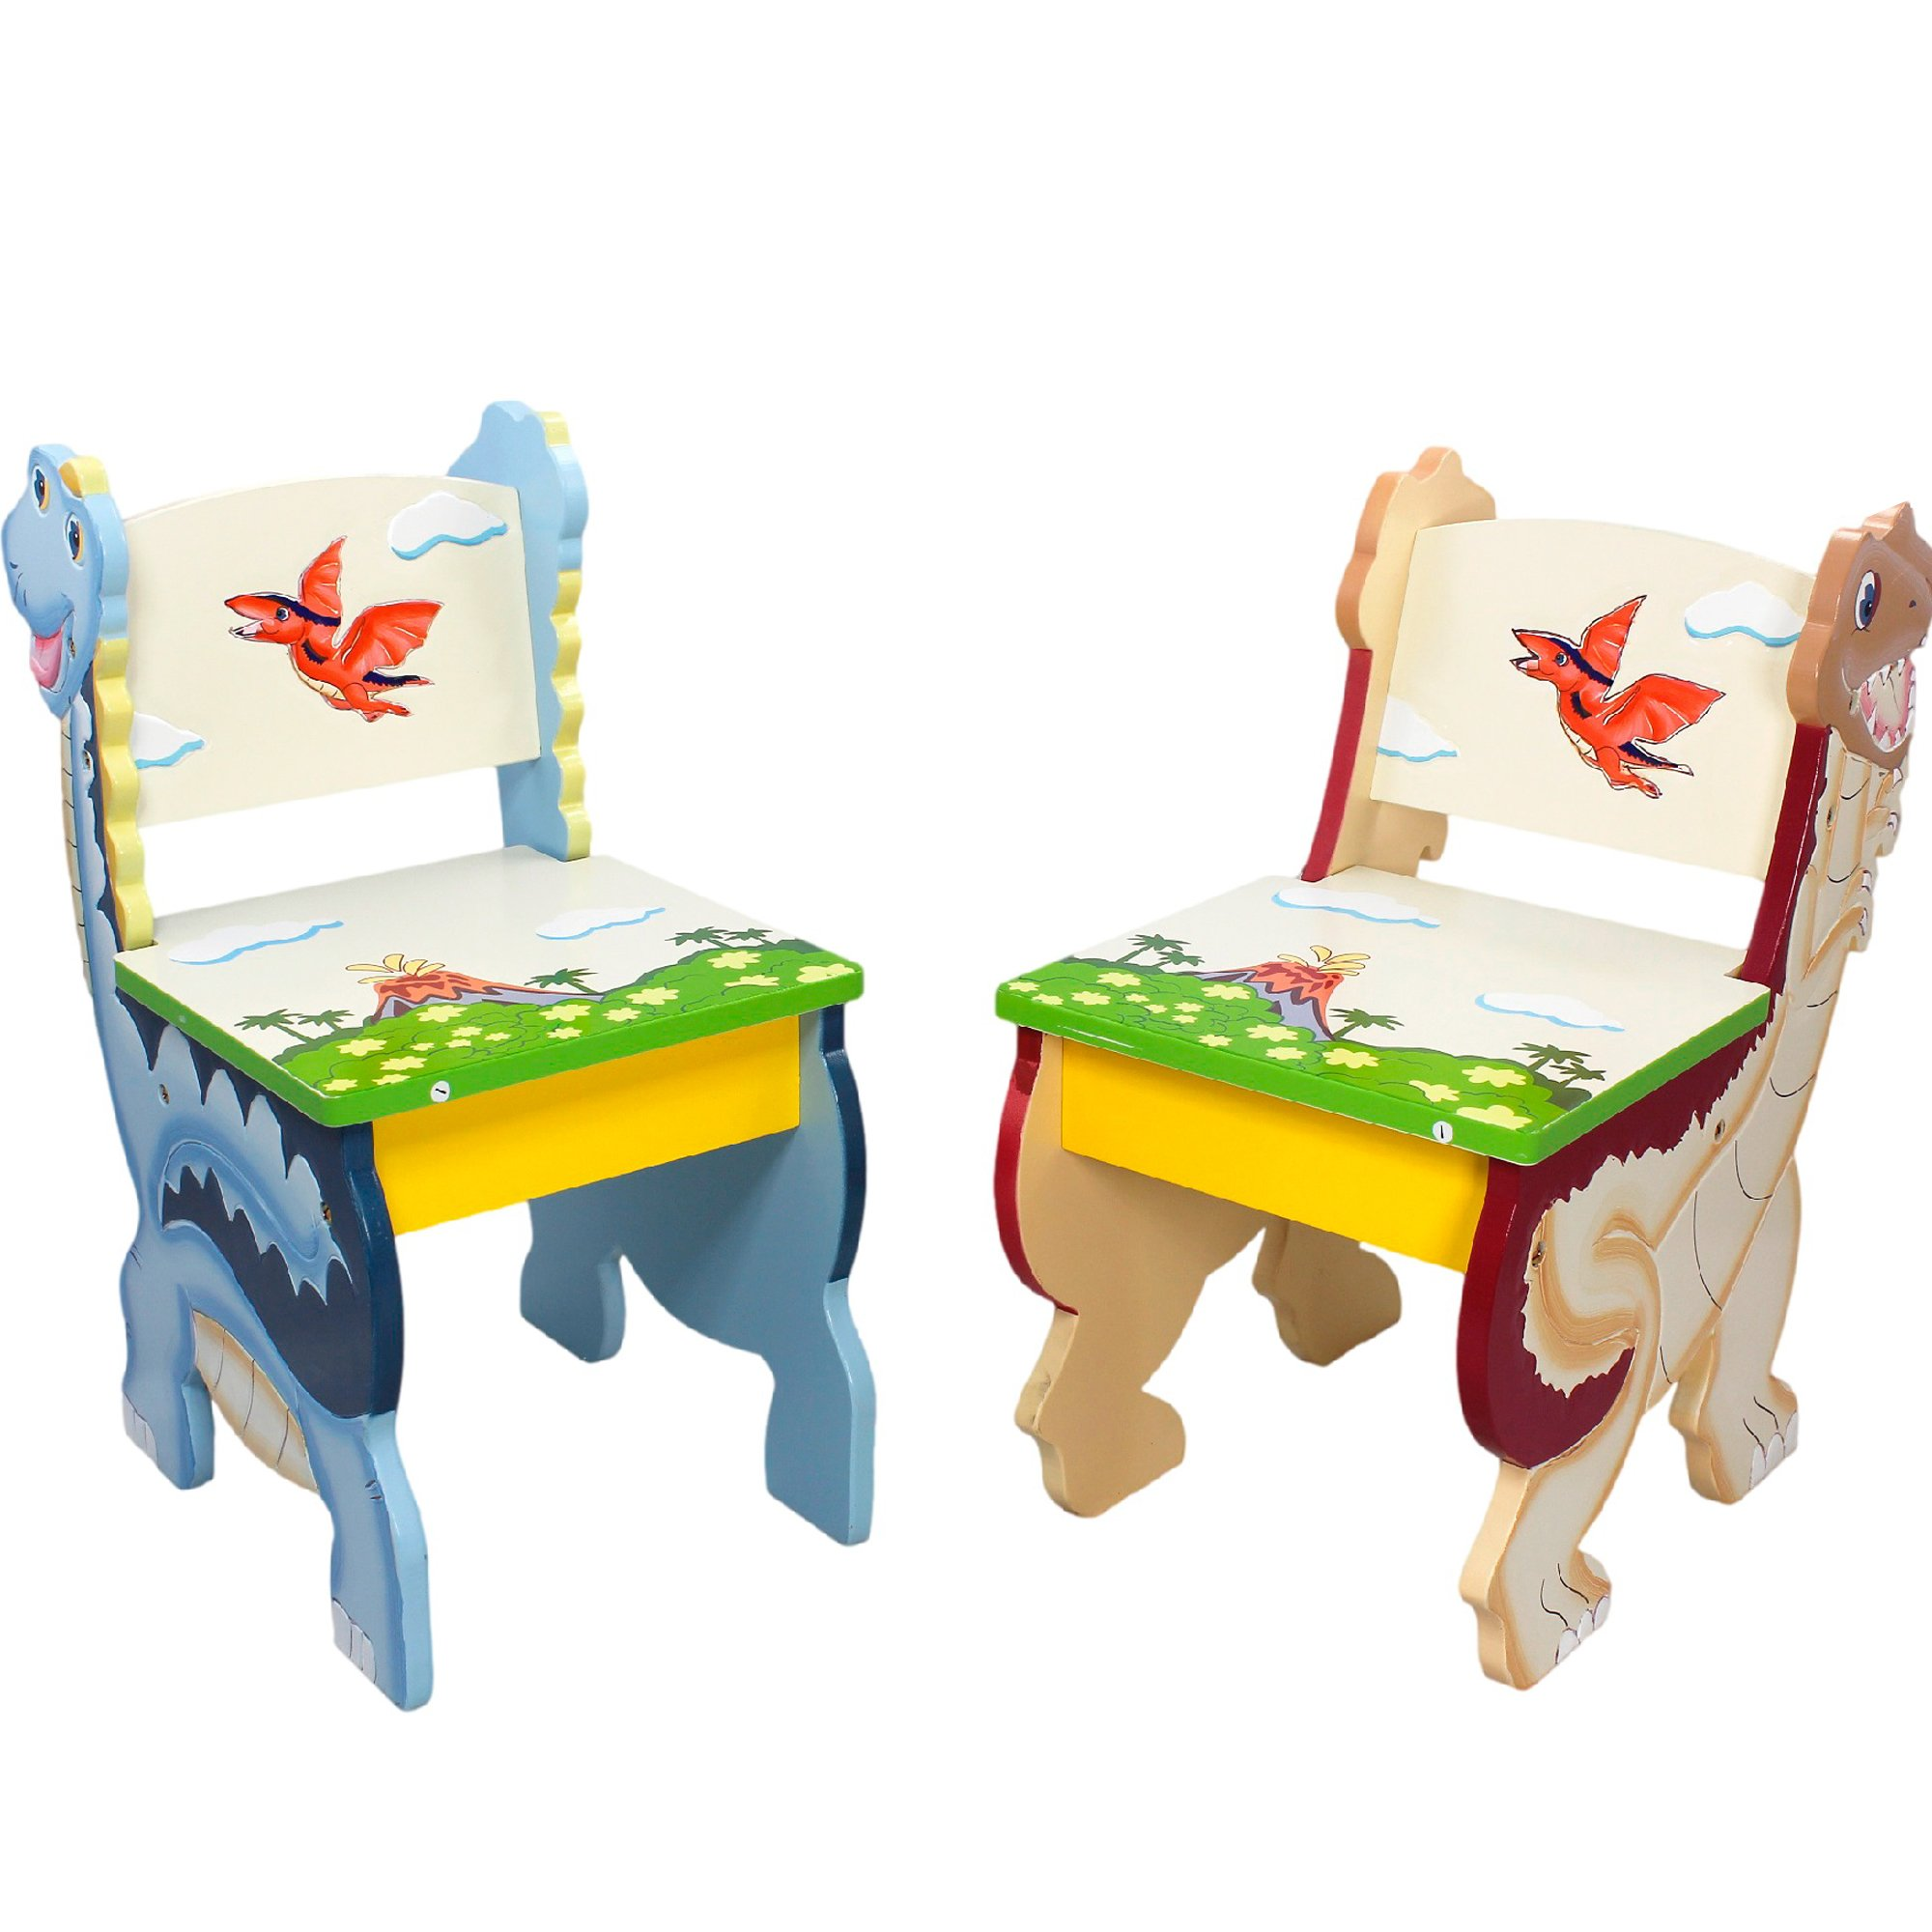 Teamson Design Corp Fantasy Fields - Dinosaur Kingdom Thematic Kids Wooden 2 Chairs Set | Imagination Inspiring Hand Crafted & Hand Painted Details Non-Toxic, Lead Free Water-based Paint